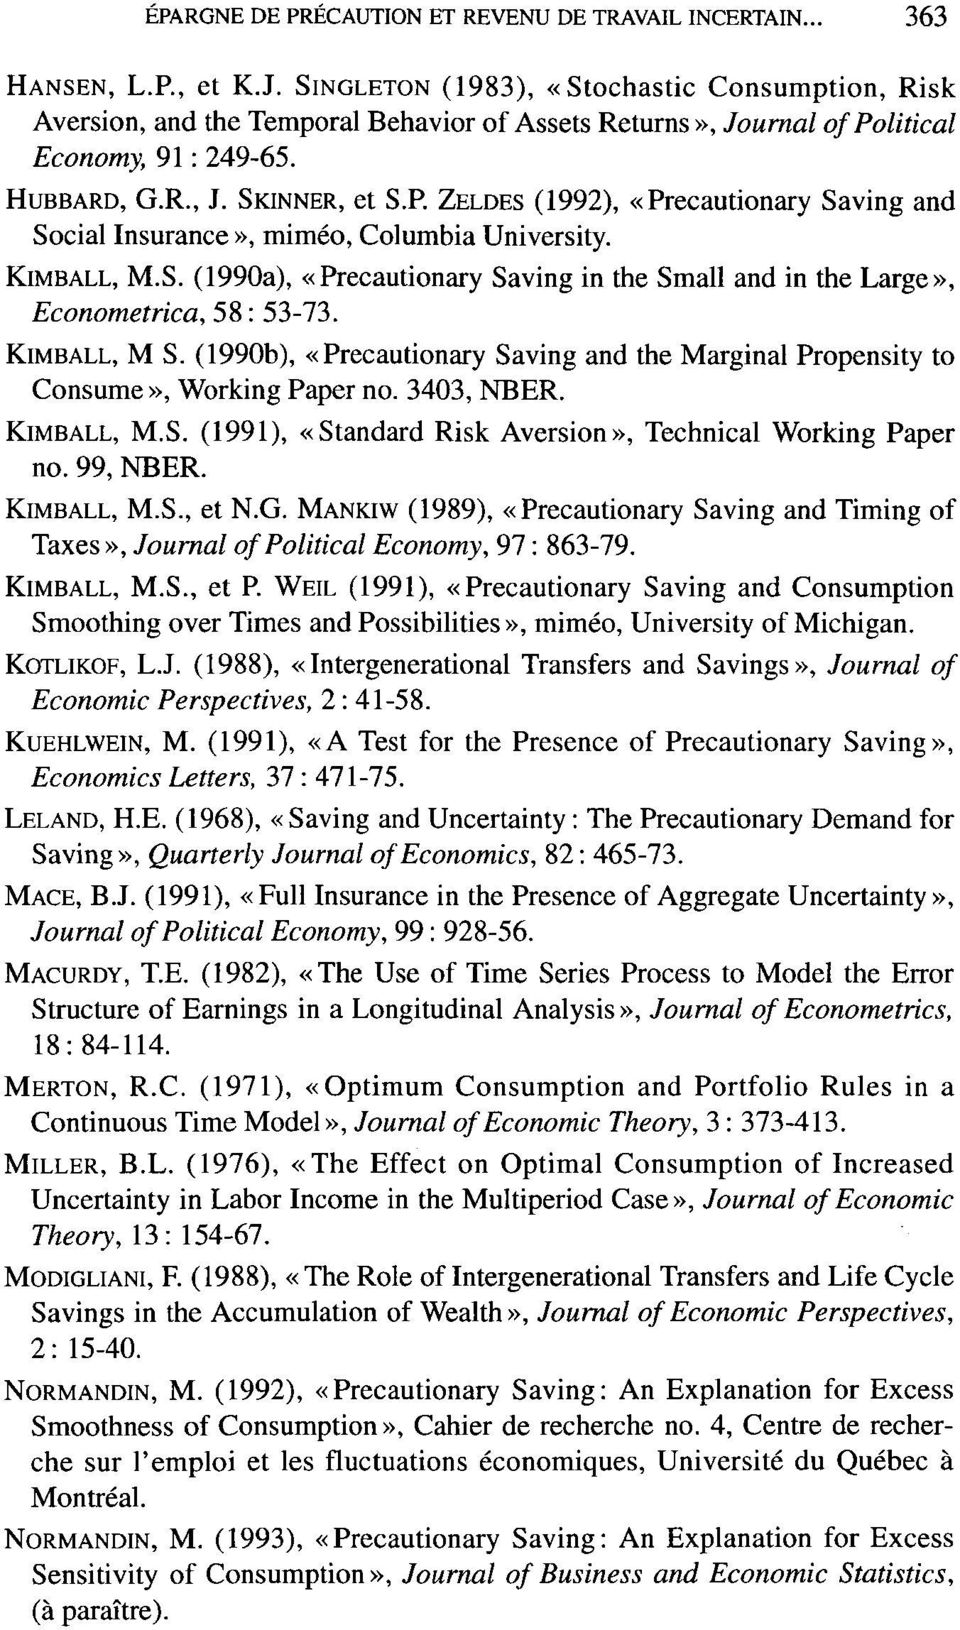 R ZELDES (1992), «Precautionary Saving and Social Insurance», miméo, Columbia University. KIMBALL, M.S. (1990a), «Precautionary Saving in the Small and in the Large», Econometrica, 58: 53-73.